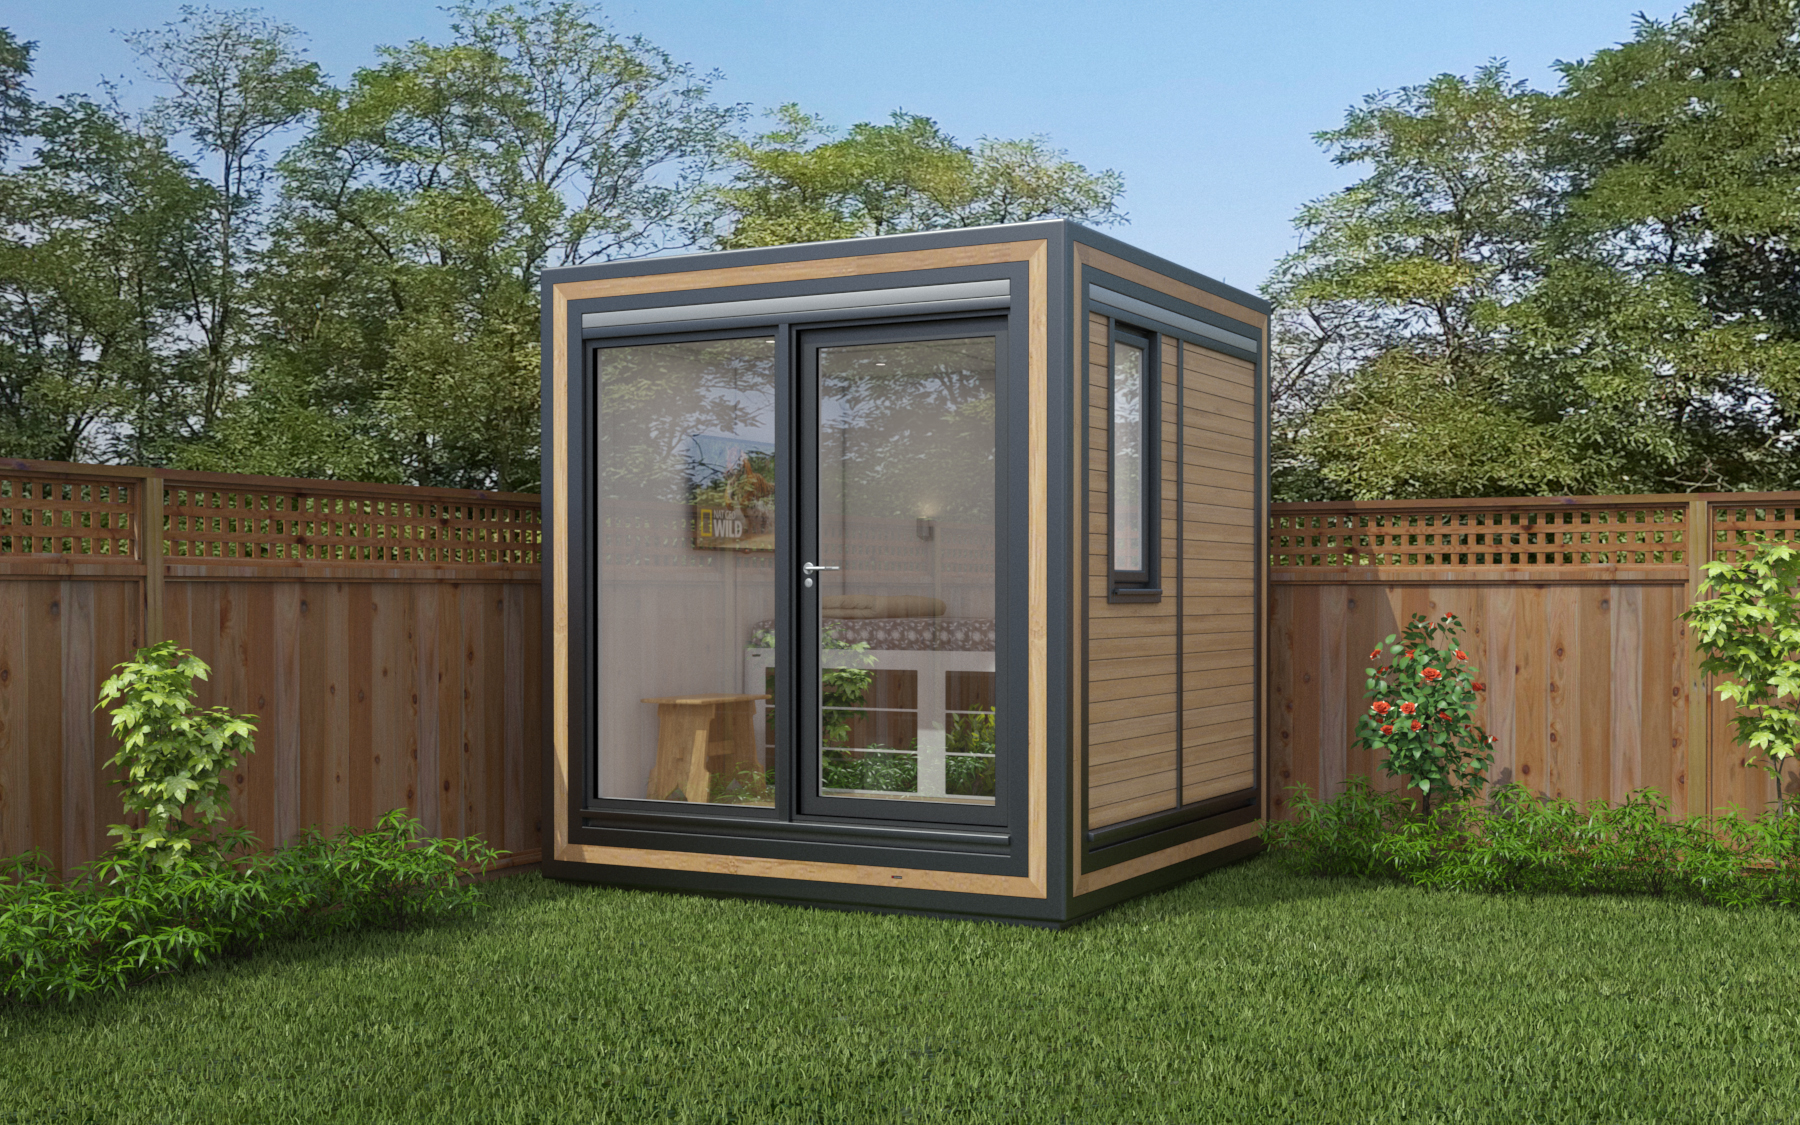 ZEDBOX 220  (2 x 2)  Internal Size: 2117 x 2117  External Size: 2587 x 2587  Bed Options: Single  Kitchen Options: N/A  Wet Room Options: N/A  Portico: No  Price:  £14,000    Optional Extras    Request Zedbox Catalogue